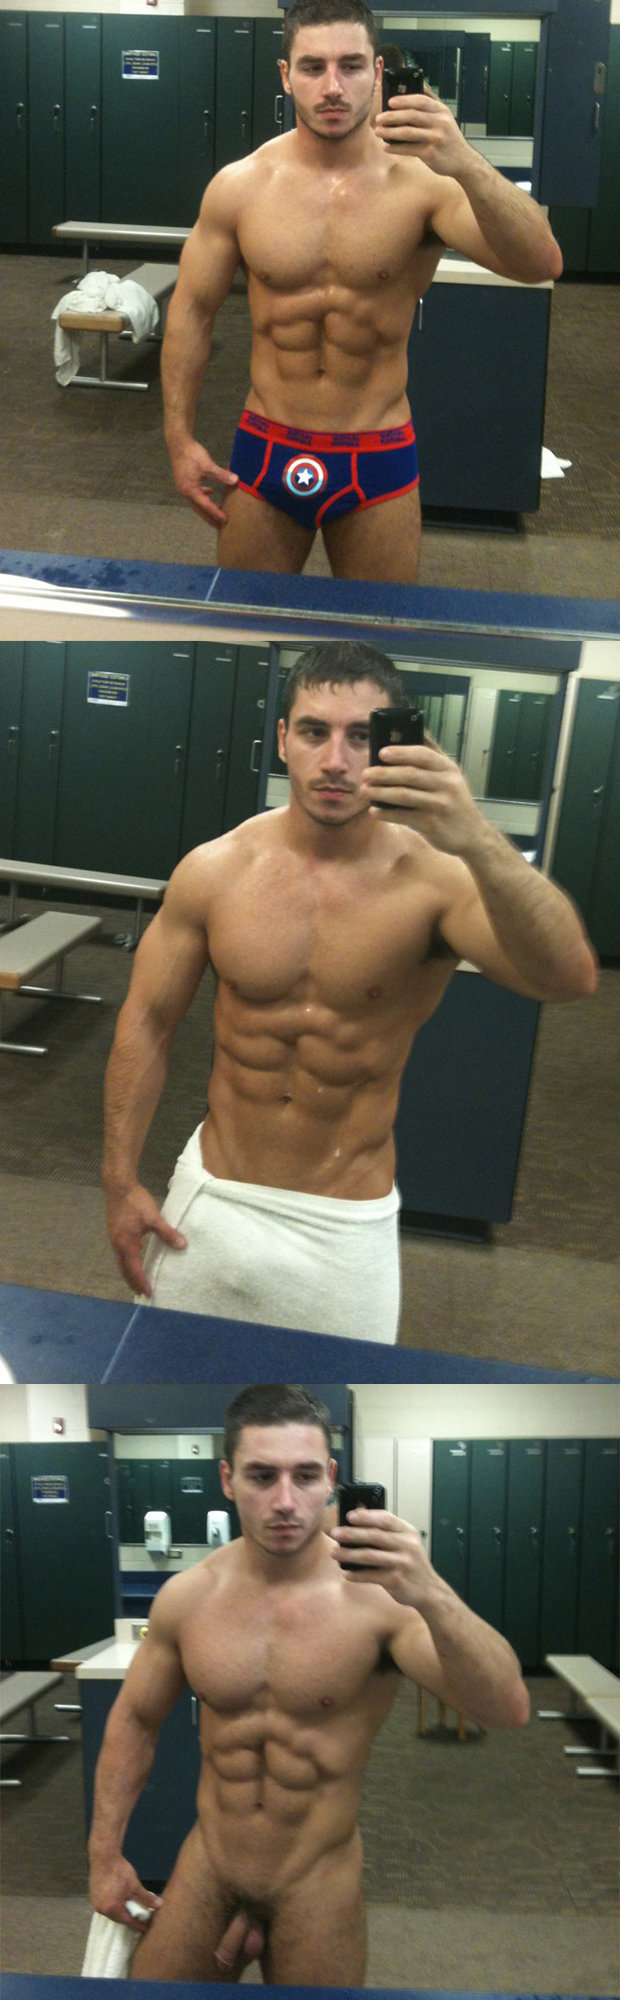 Amateur lockerroom male nude